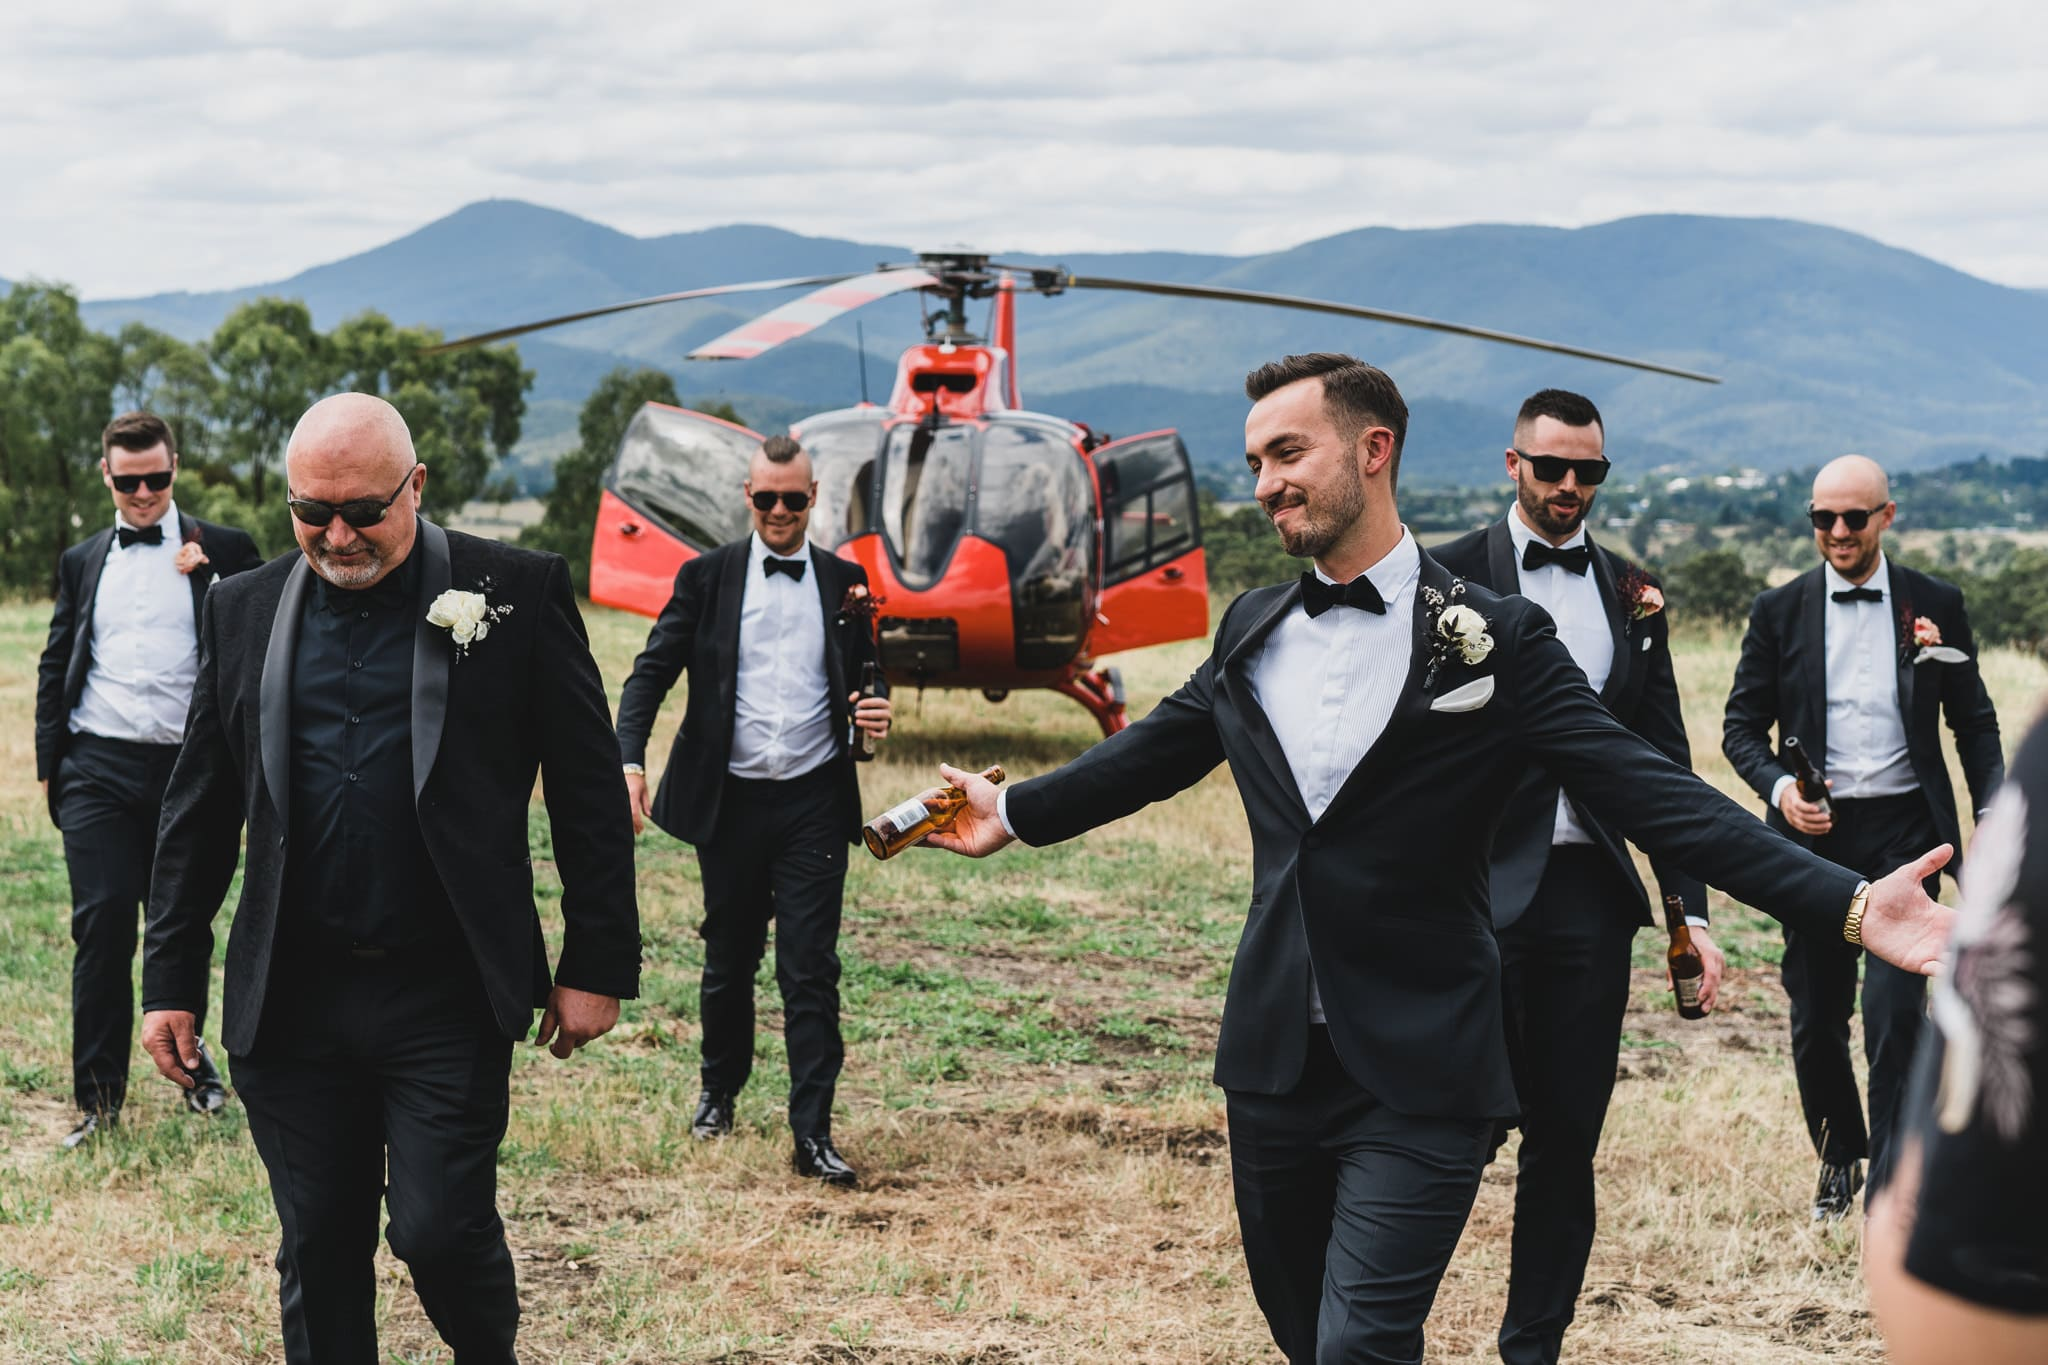 Adam flew in via helicopter for the first look